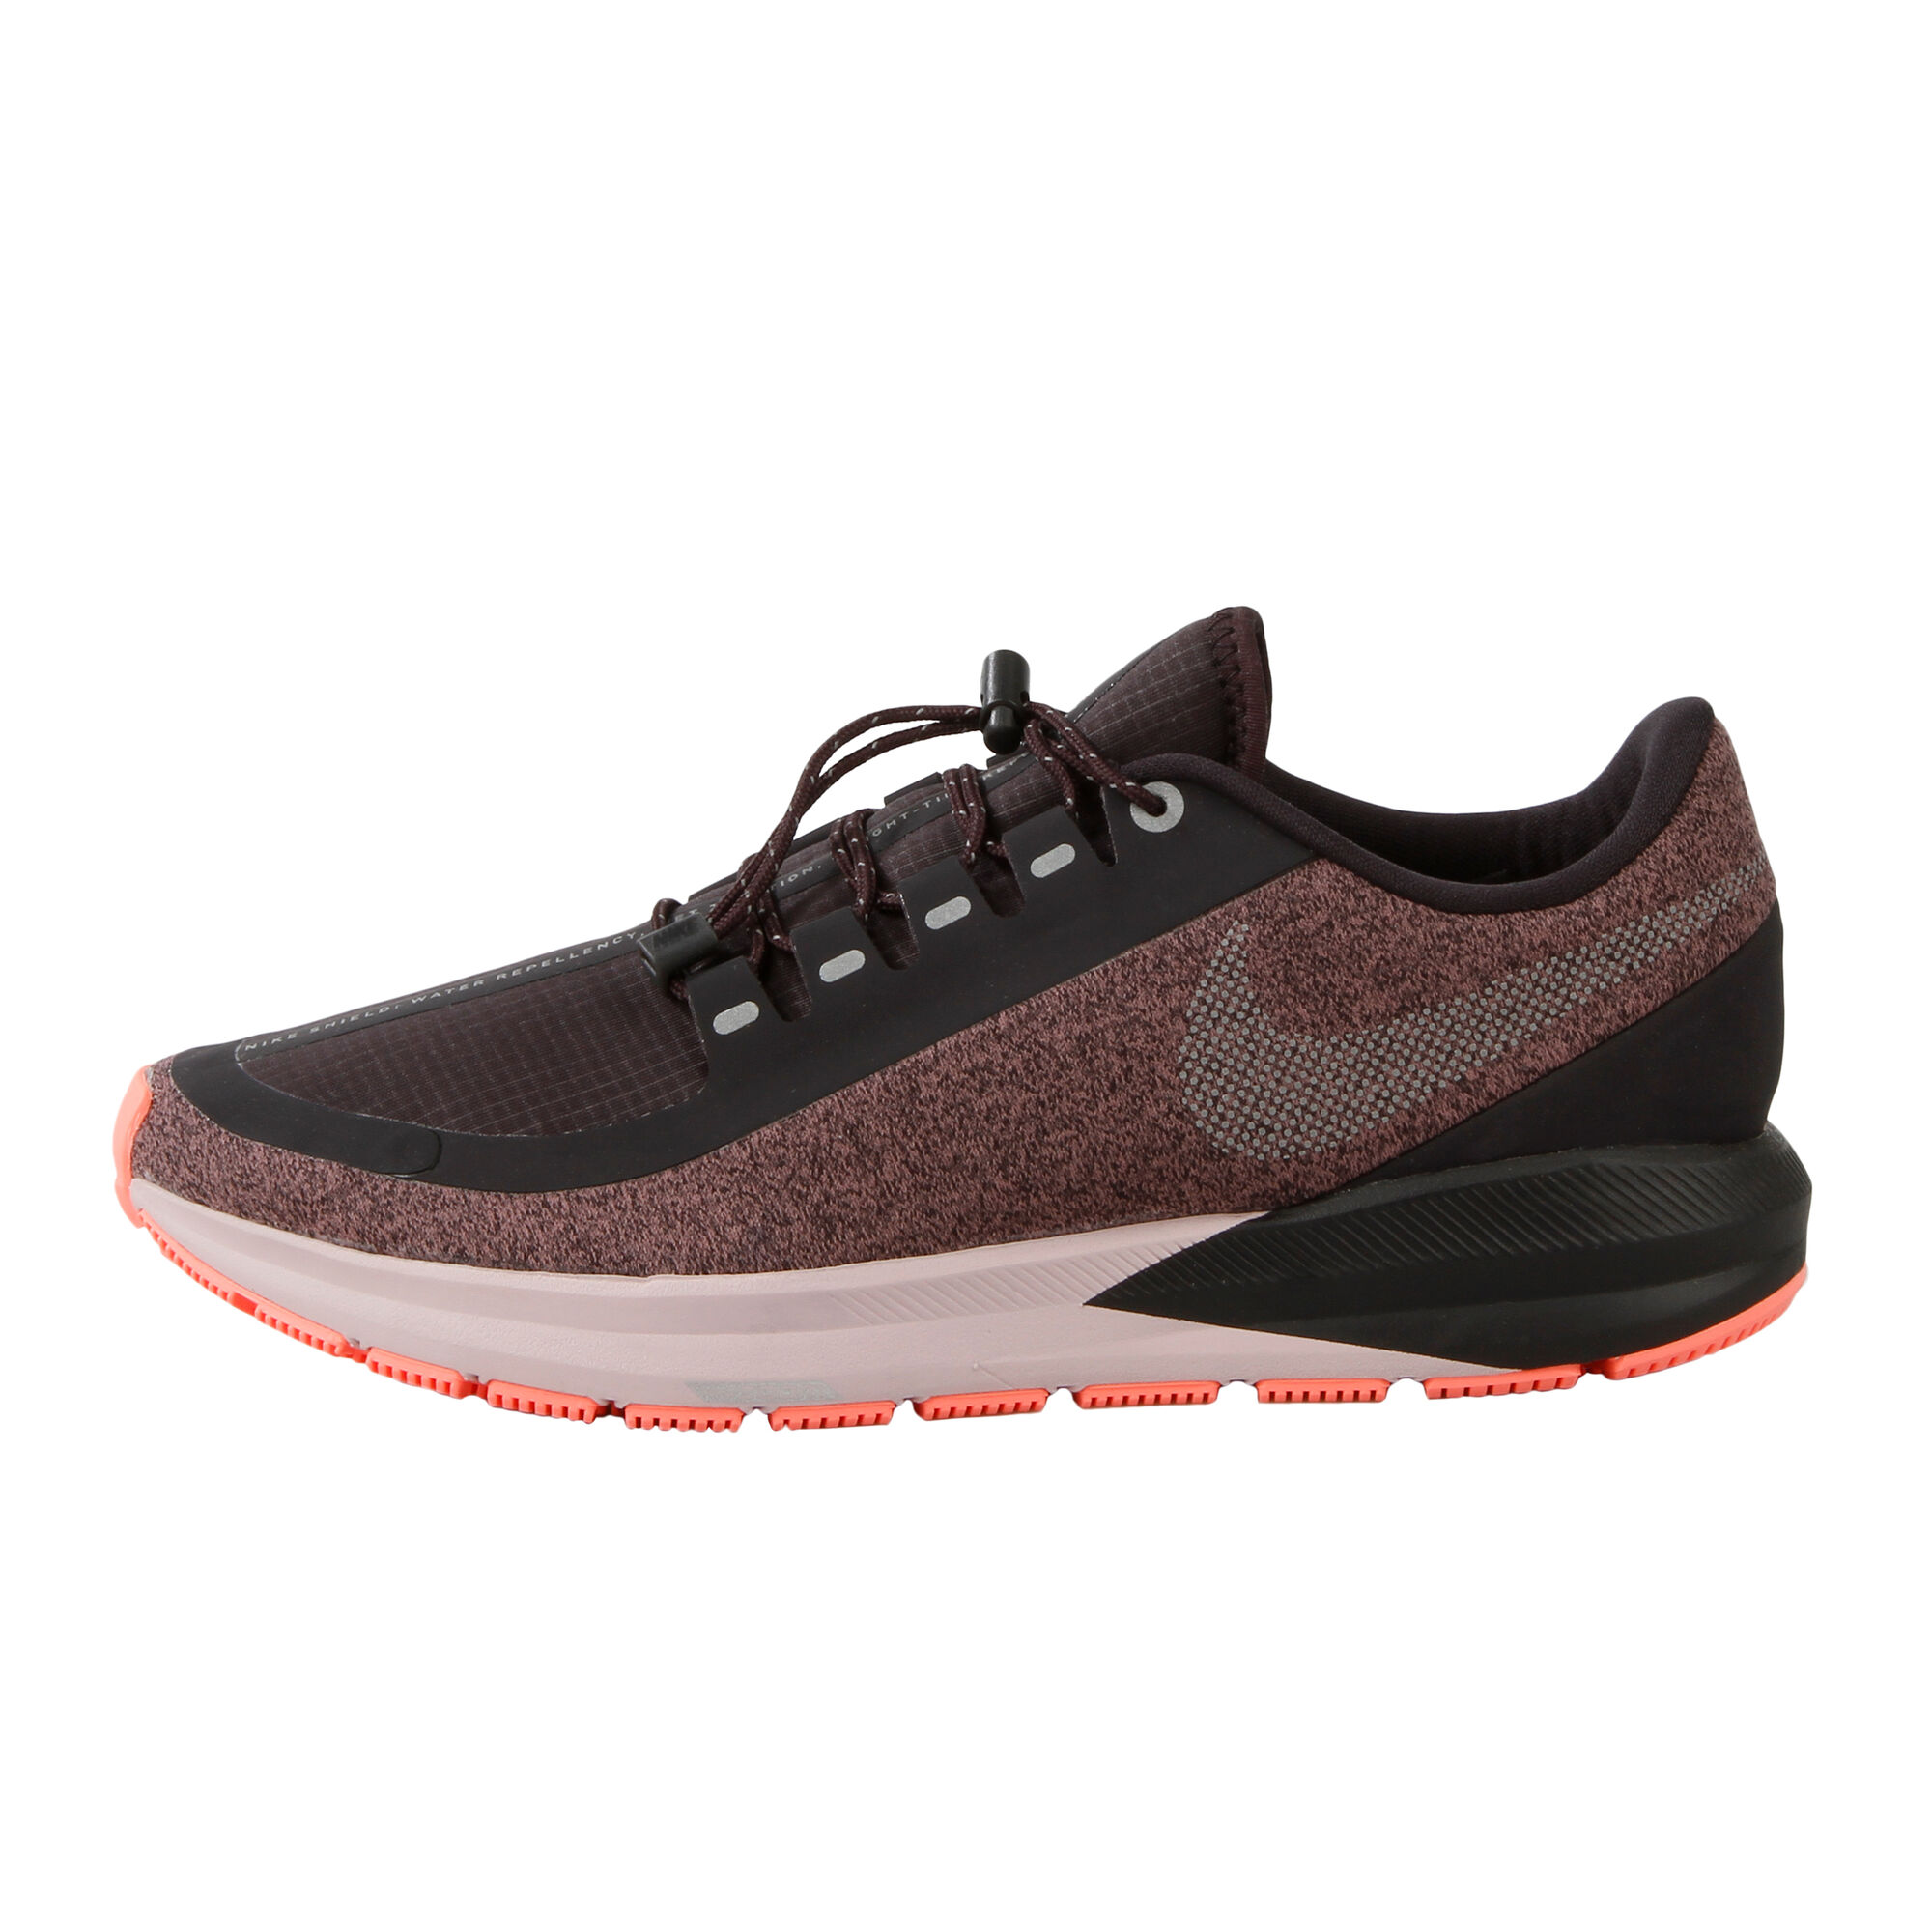 b6ef9bd956b Nike  Nike  Nike  Nike  Nike  Nike  Nike  Nike  Nike. Air Zoom Structure 22  ...